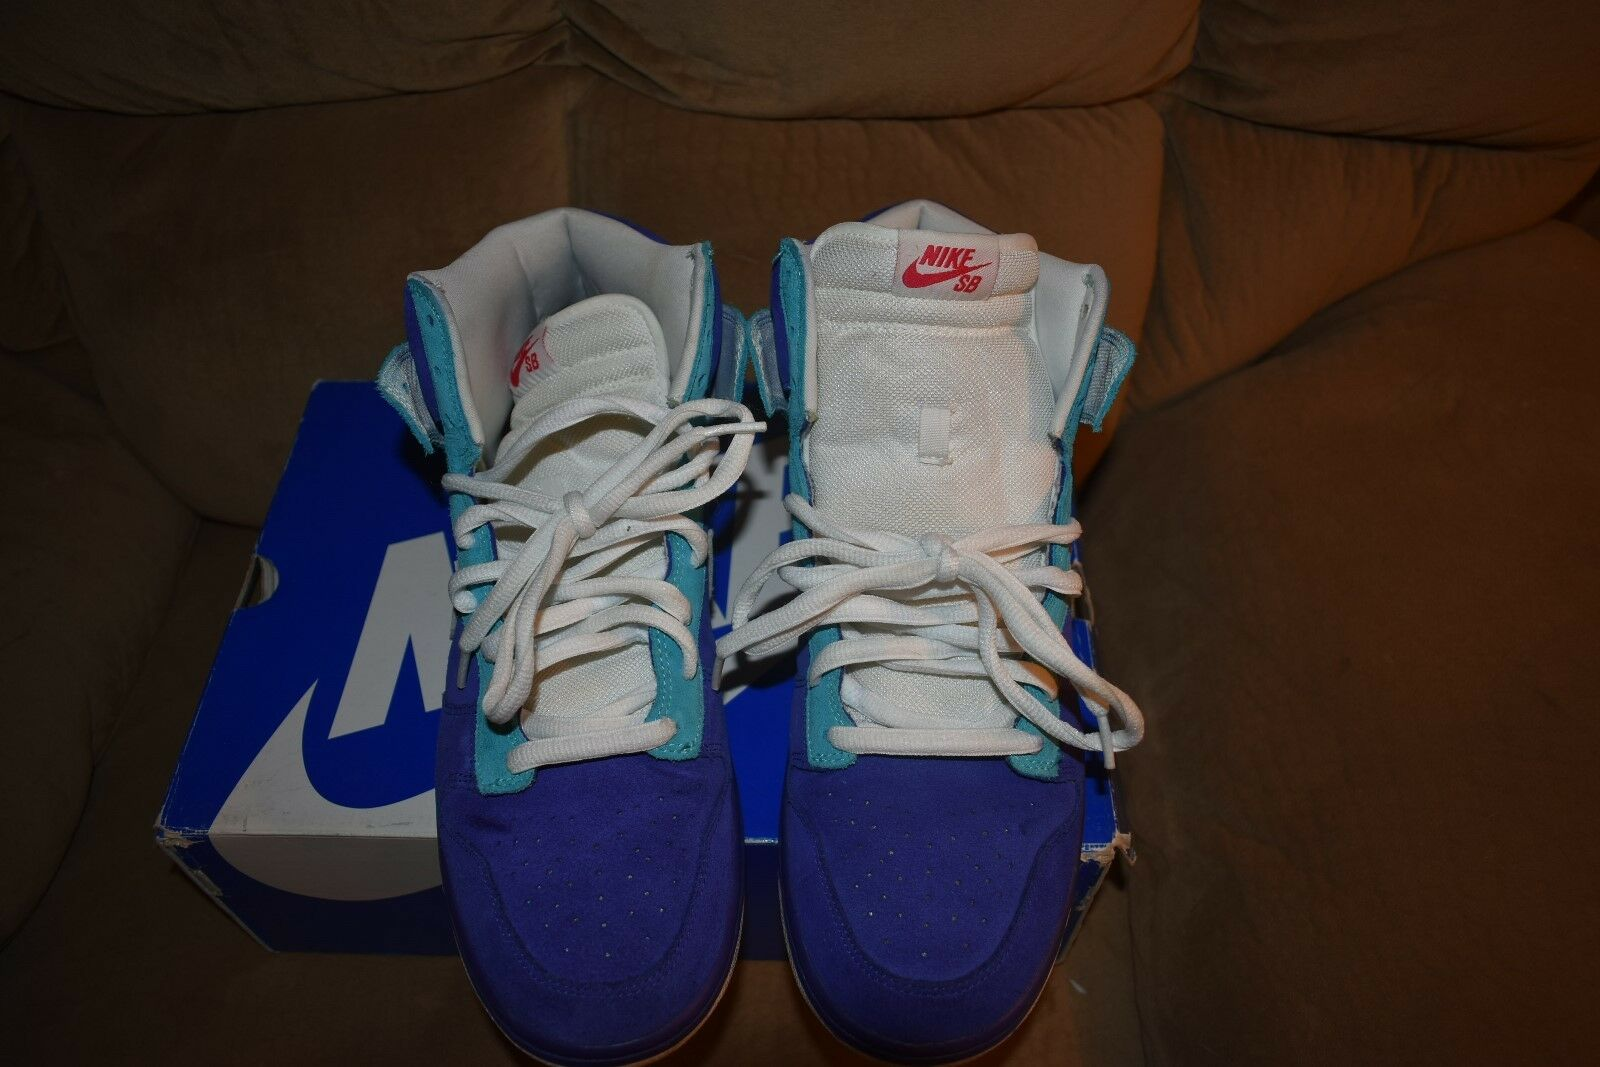 2009 Nike SB Dunk High Ocean Airlines Germain Blue 305050-400 Size 11.5 LOST